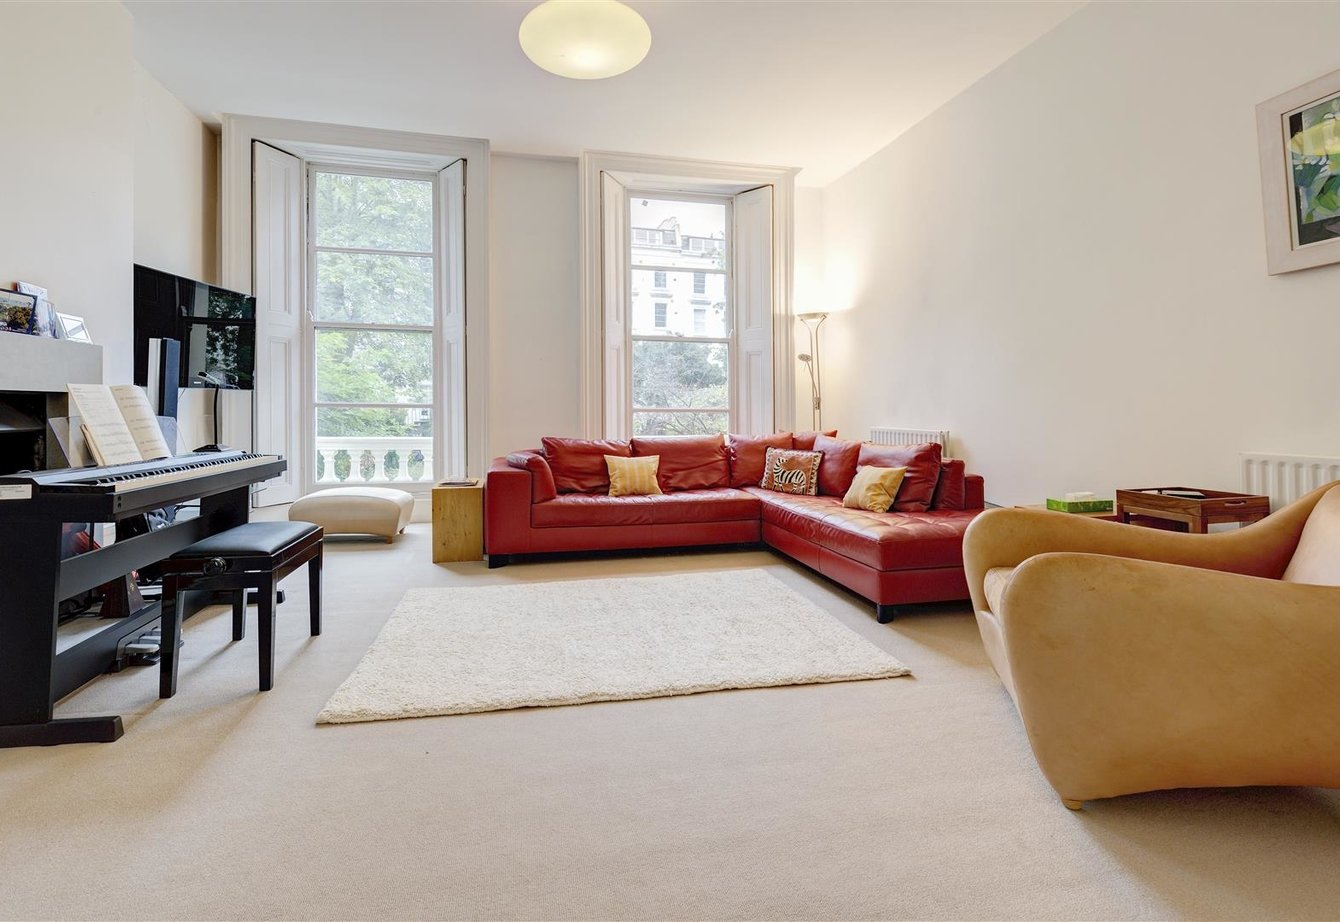 for-sale-bristol-gardens-london-22-view2